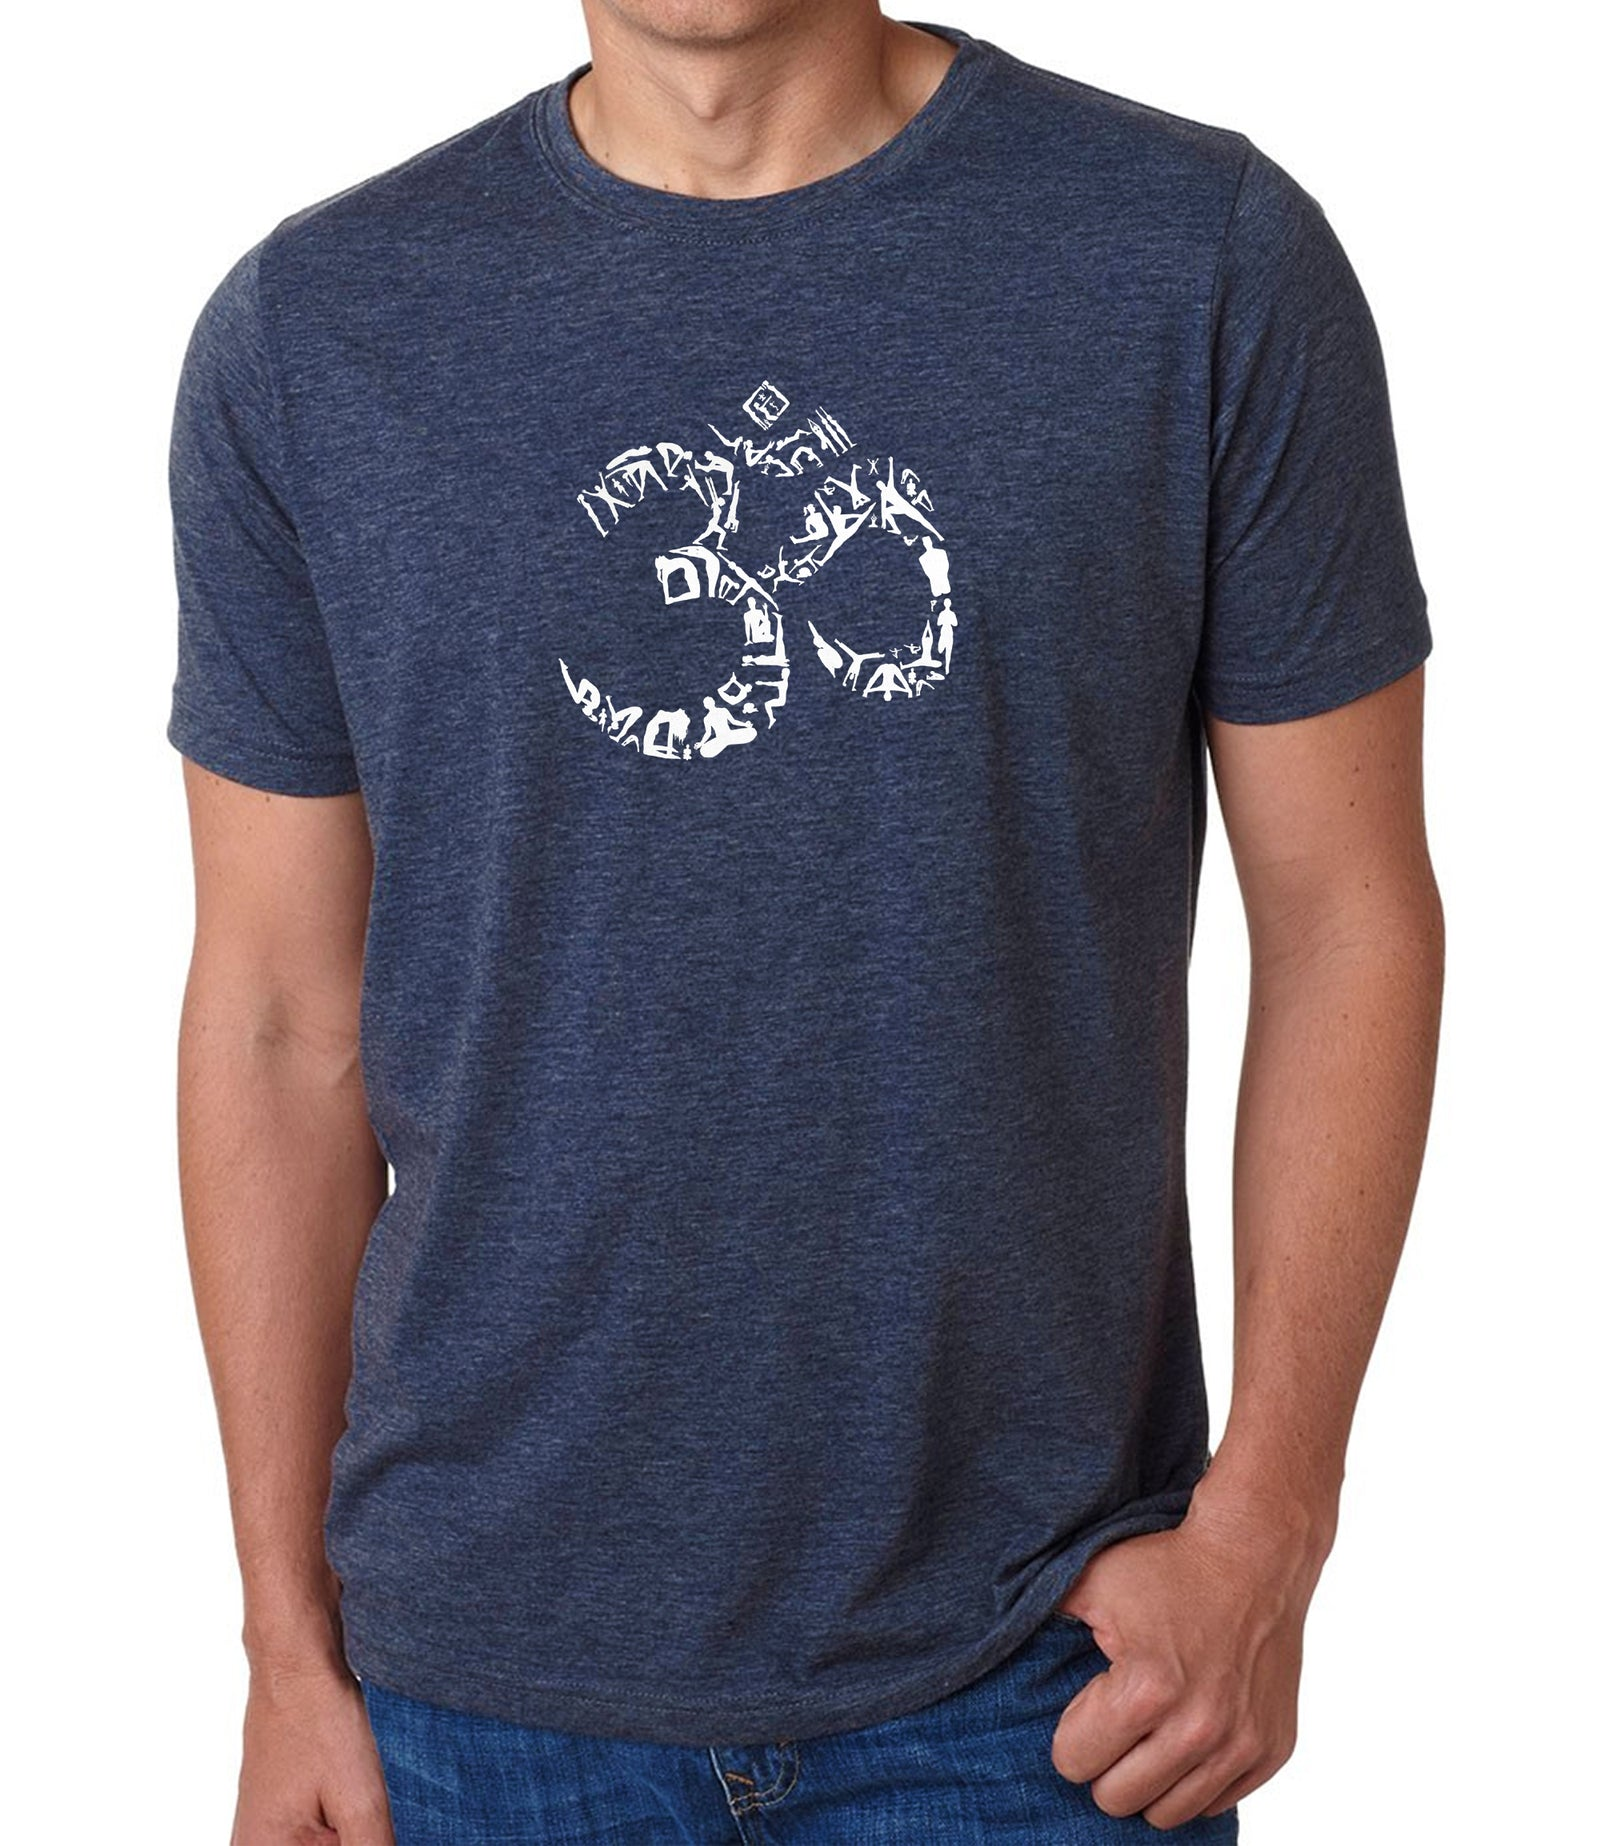 Men's Premium Blend Word Art T-shirt - THE OM SYMBOL OUT OF YOGA POSES